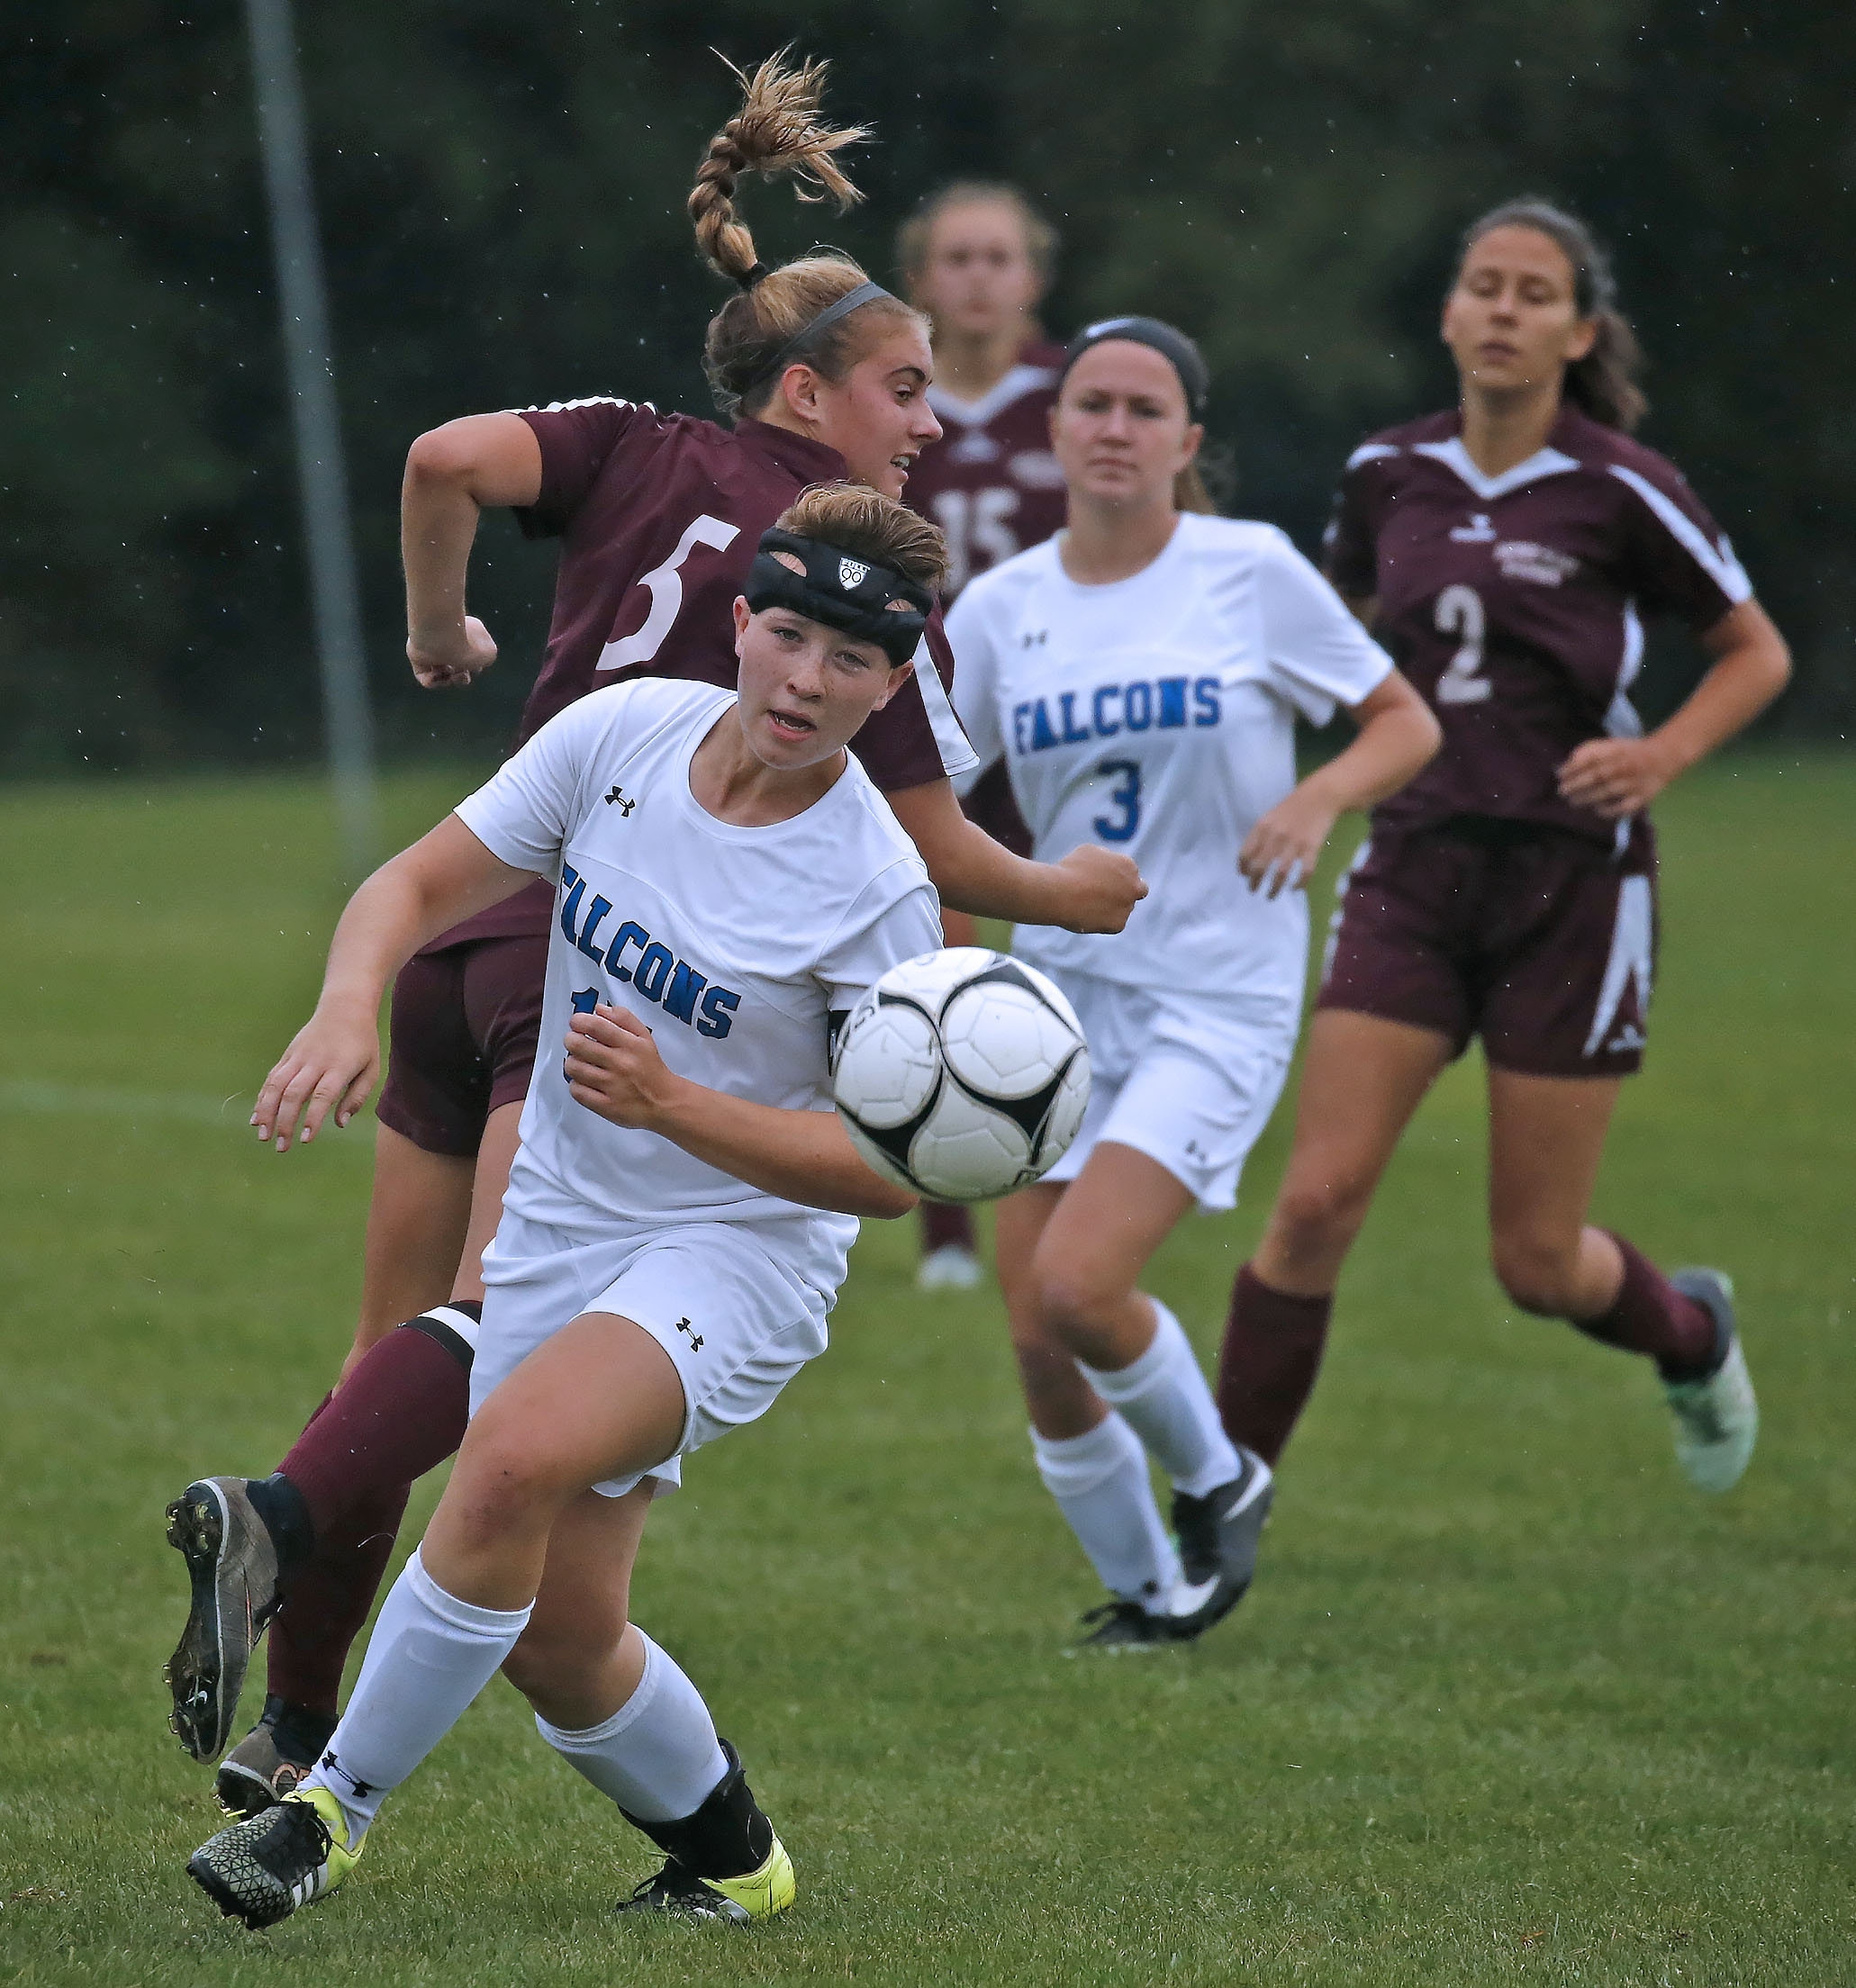 Frontier's Jysenia Dunlavey wears a protective headband while playing in a game against Sacred Heart Academy.